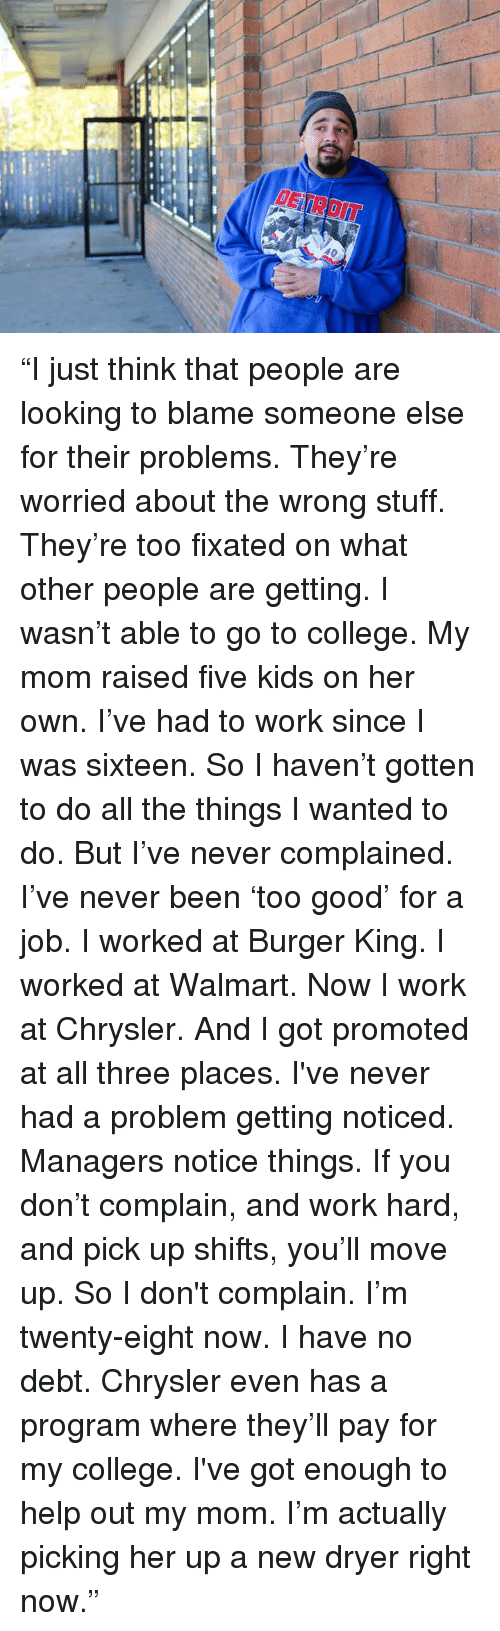 """Burger King, College, and Dank: fp """"I just think that people are looking to blame someone else for their problems.  They're worried about the wrong stuff.  They're too fixated on what other people are getting.  I wasn't able to go to college.  My mom raised five kids on her own.  I've had to work since I was sixteen.  So I haven't gotten to do all the things I wanted to do.  But I've never complained.  I've never been 'too good' for a job.  I worked at Burger King.  I worked at Walmart.  Now I work at Chrysler.  And I got promoted at all three places.  I've never had a problem getting noticed.  Managers notice things.  If you don't complain, and work hard, and pick up shifts, you'll move up.  So I don't complain.  I'm twenty-eight now.  I have no debt.   Chrysler even has a program where they'll pay for my college.  I've got enough to help out my mom.  I'm actually picking her up a new dryer right now."""""""